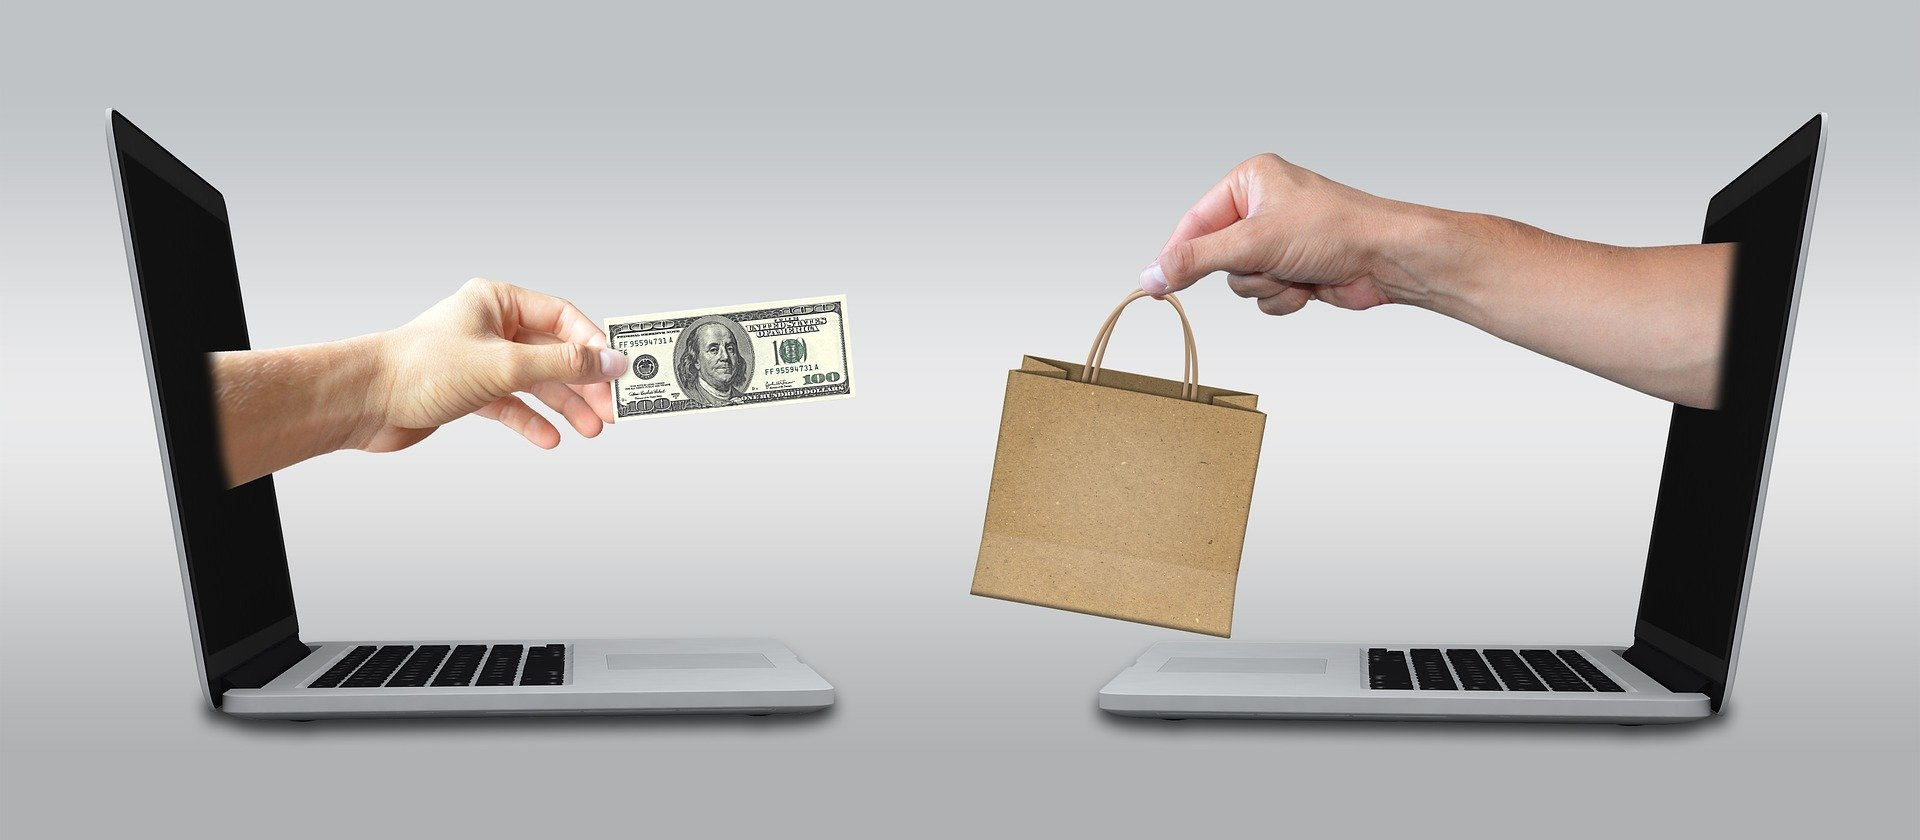 Two arms extending from computer monitors exchanging a shopping bag with money